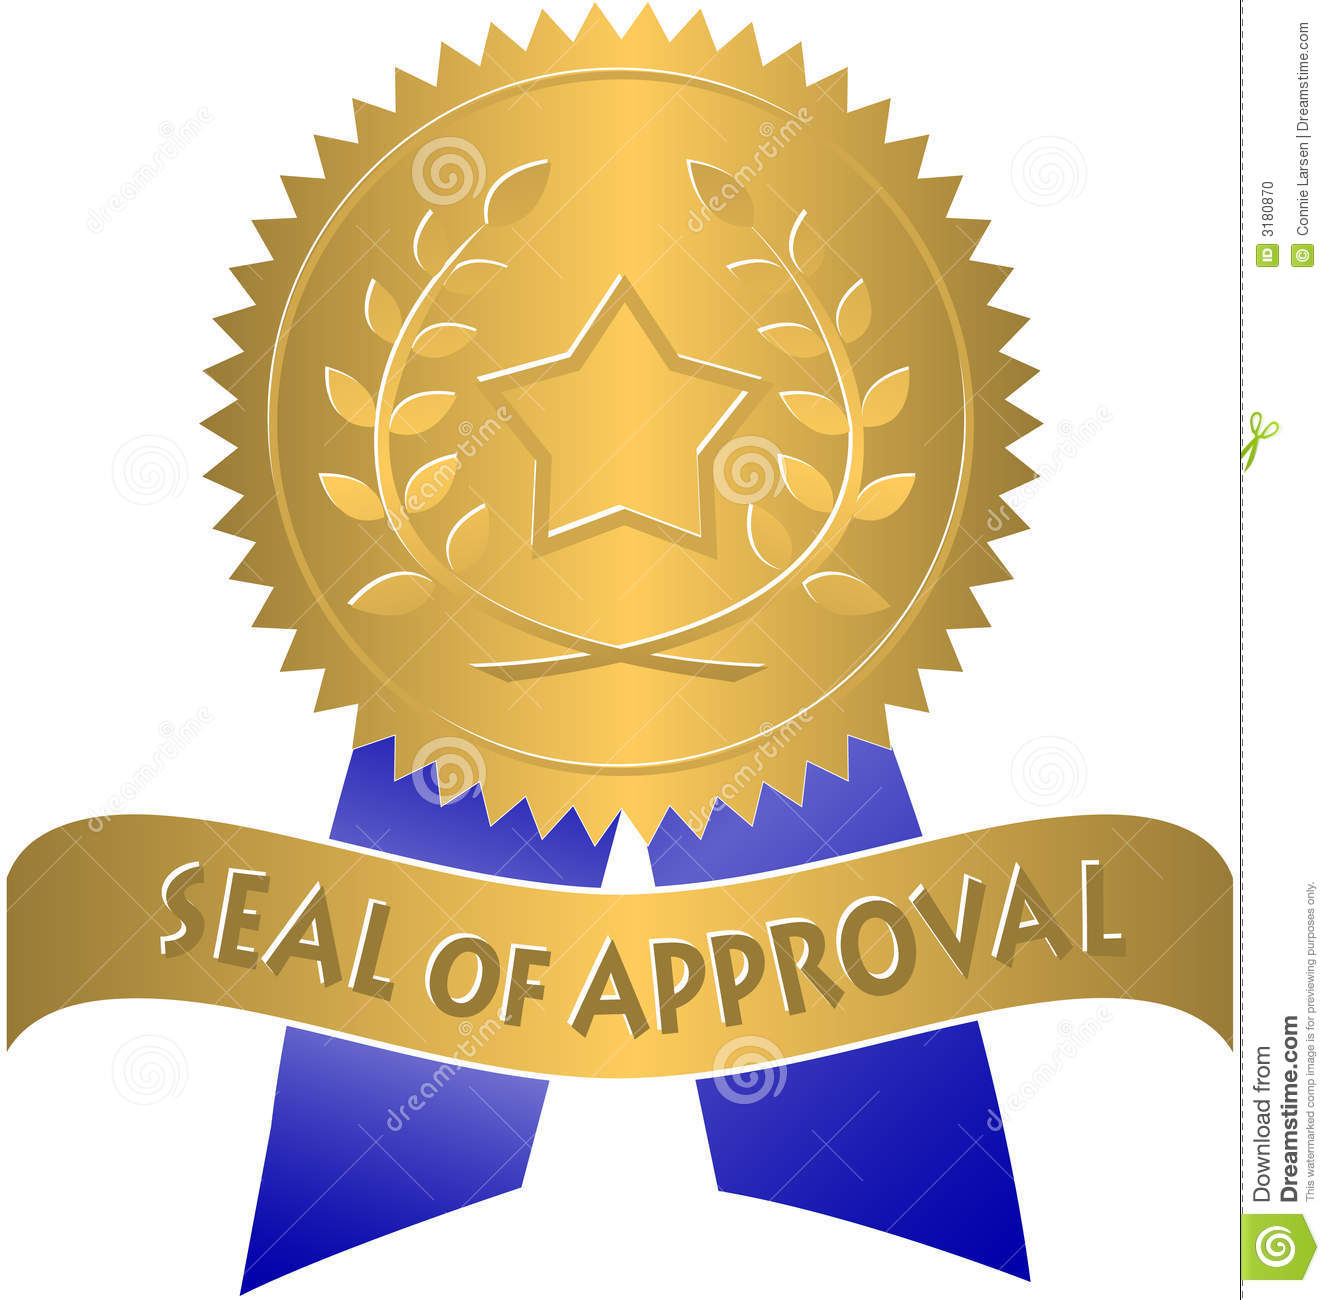 seal of approval eps stock vector illustration of clipart 3180870